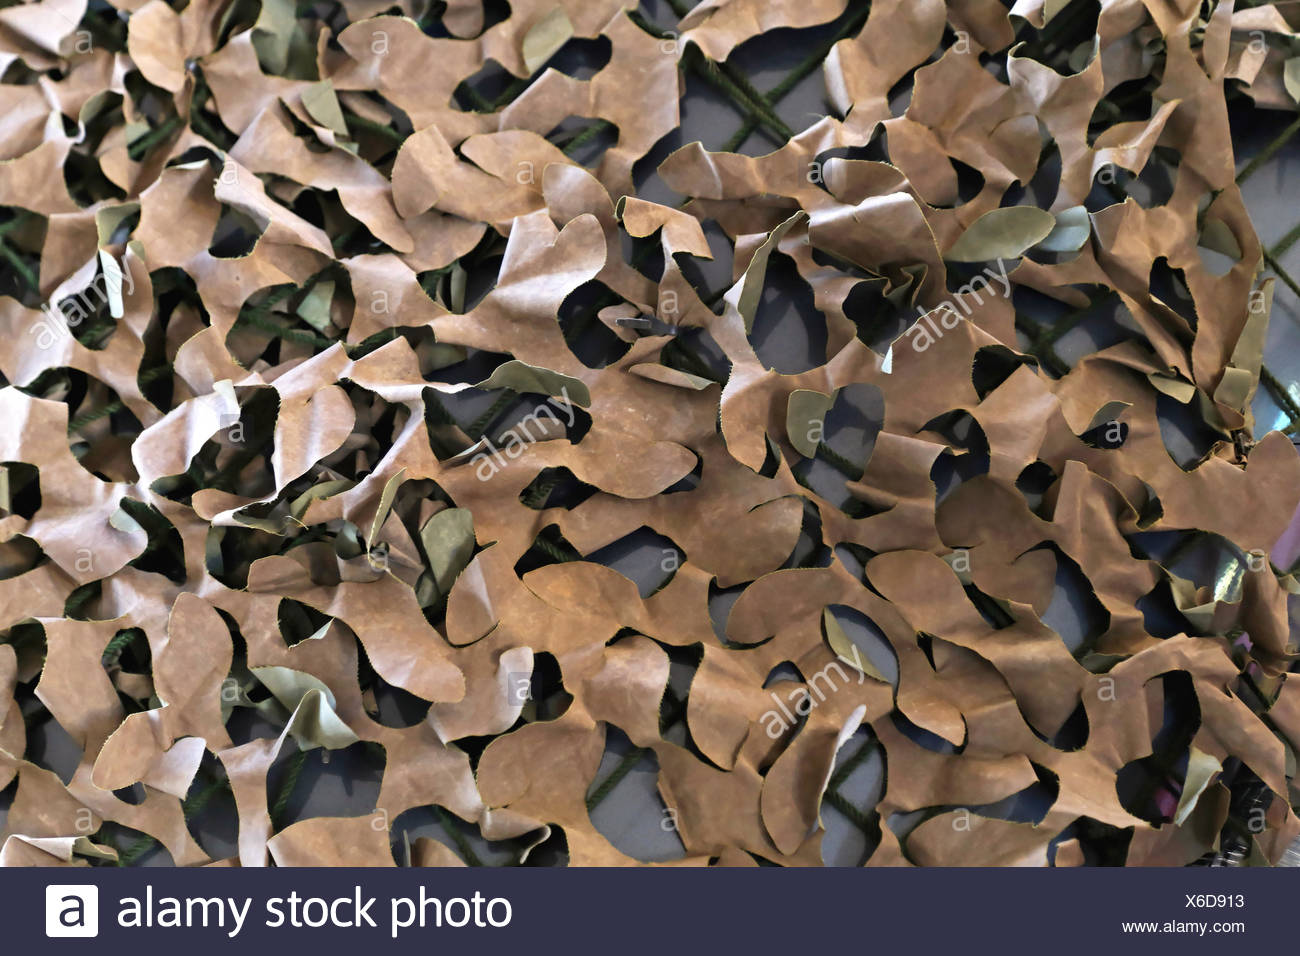 Camouflage netting for hunting or military use - Stock Image